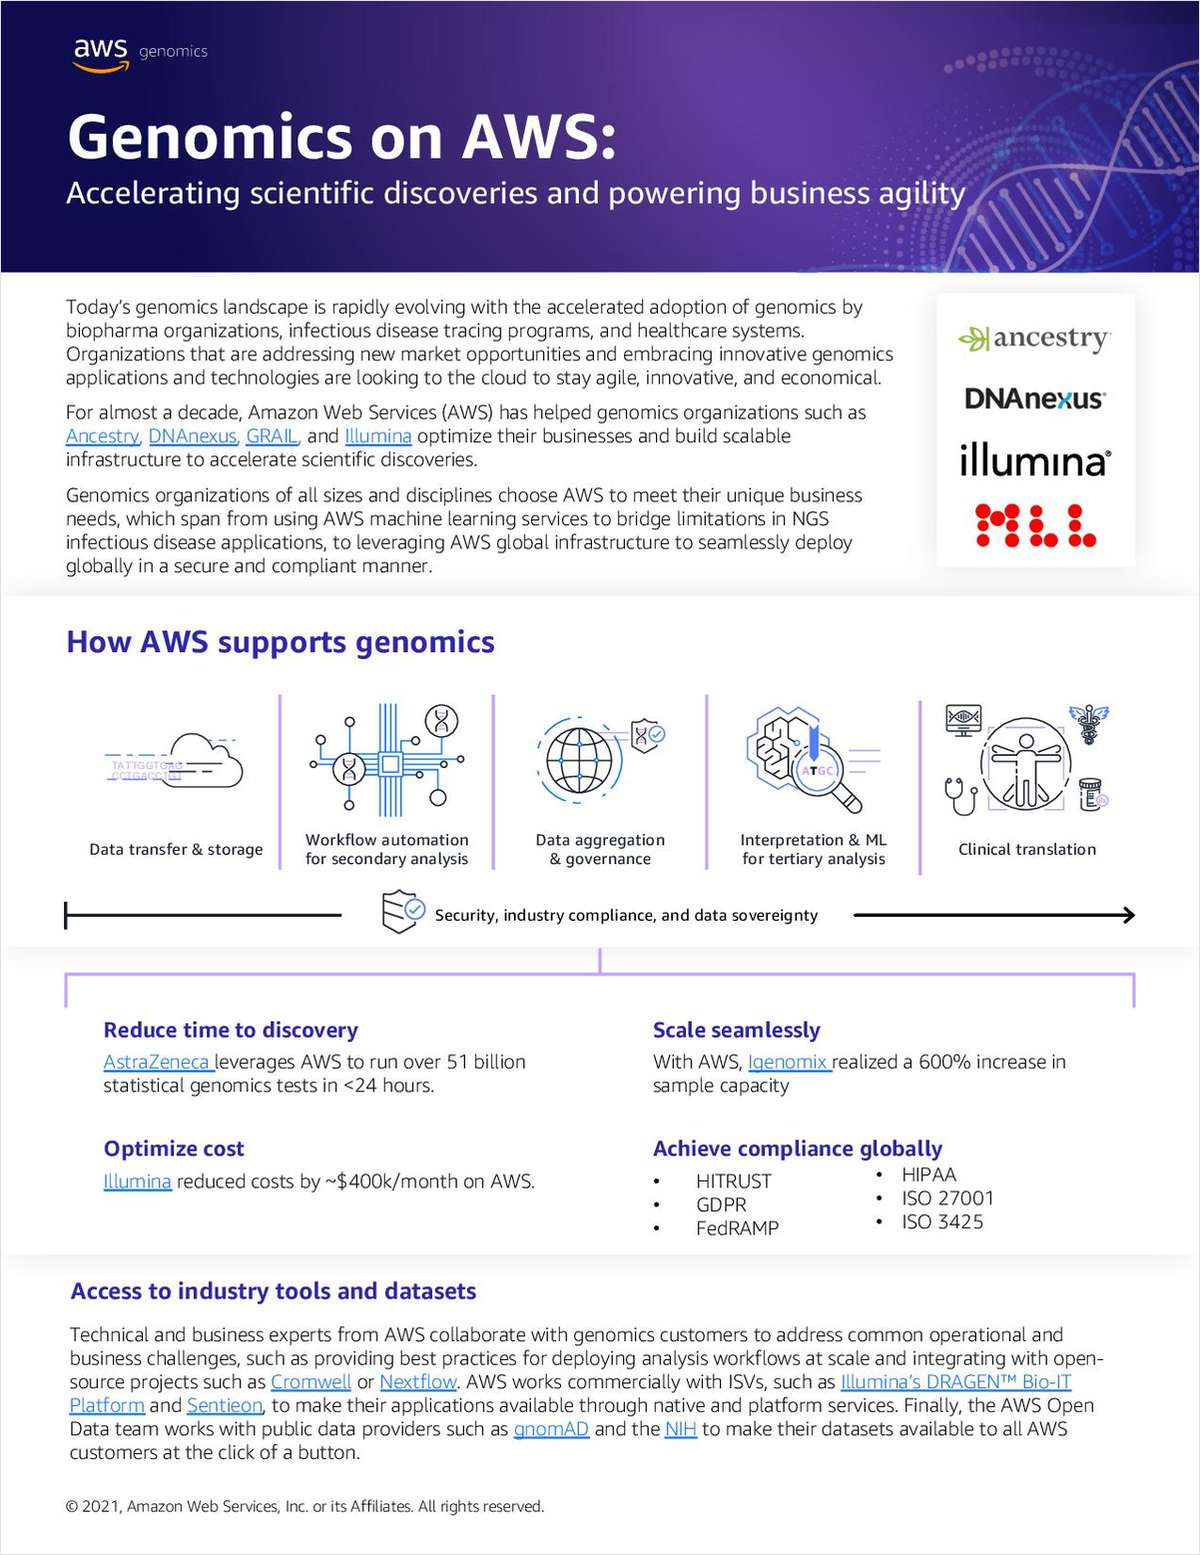 Genomics on AWS: Accelerating Scientific Discoveries and Powering Business Agility